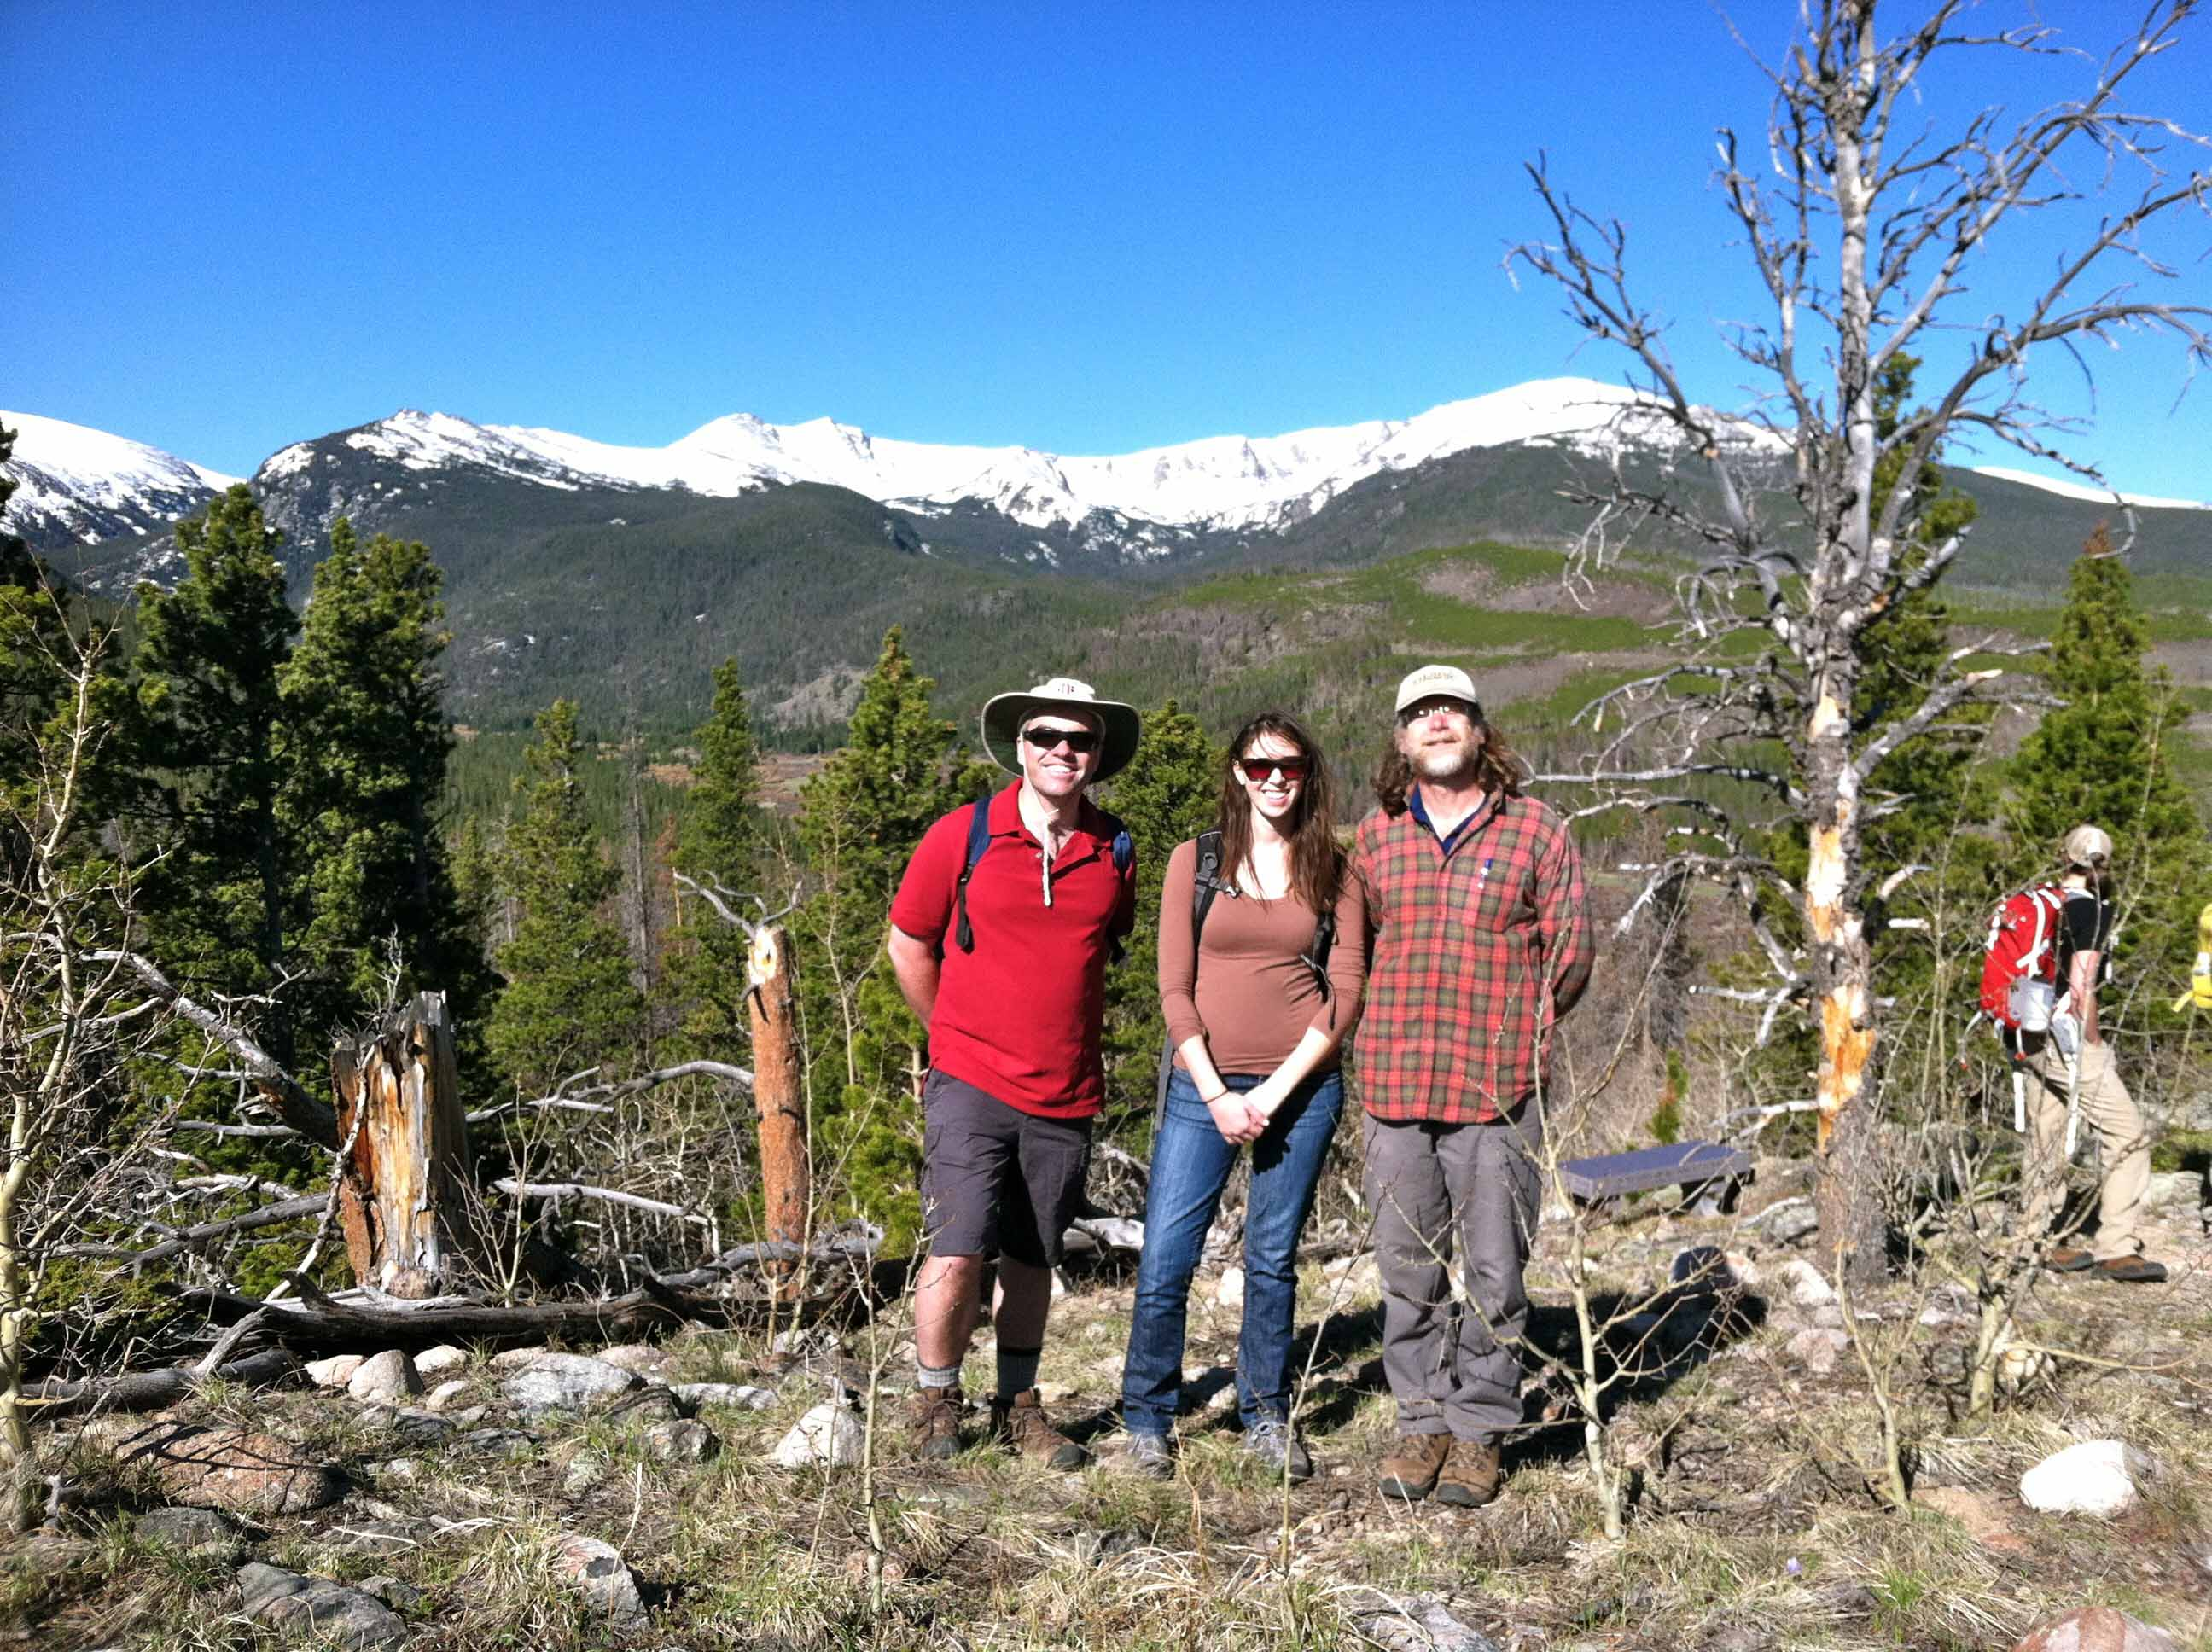 Adrian Howkins, Hayley Brazier, and Mark Fiege pose for a photo after listening to Michael Reidy's presentation on mountaineering. Pingree Park, Colorado. Photograph courtesy of the author.